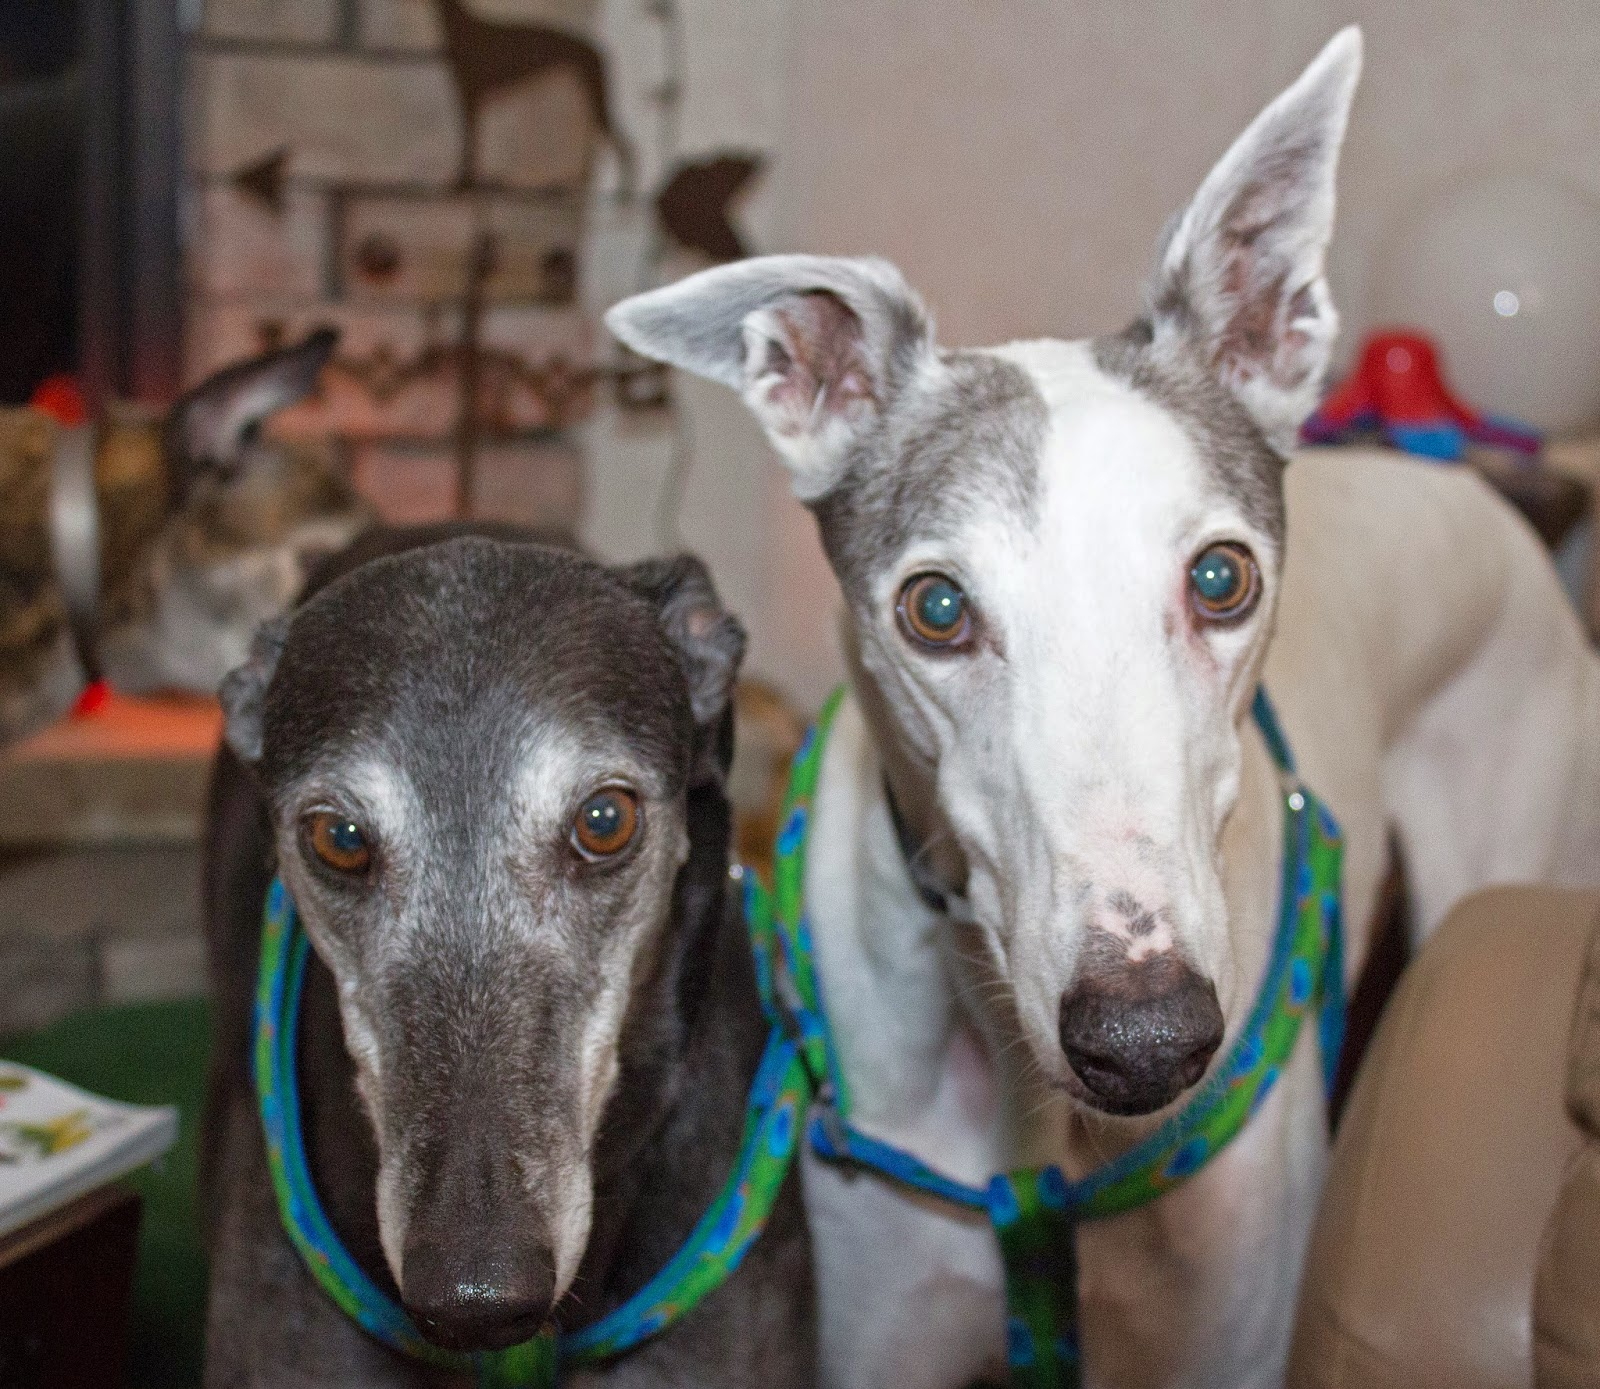 Blue and Bettina greyhound